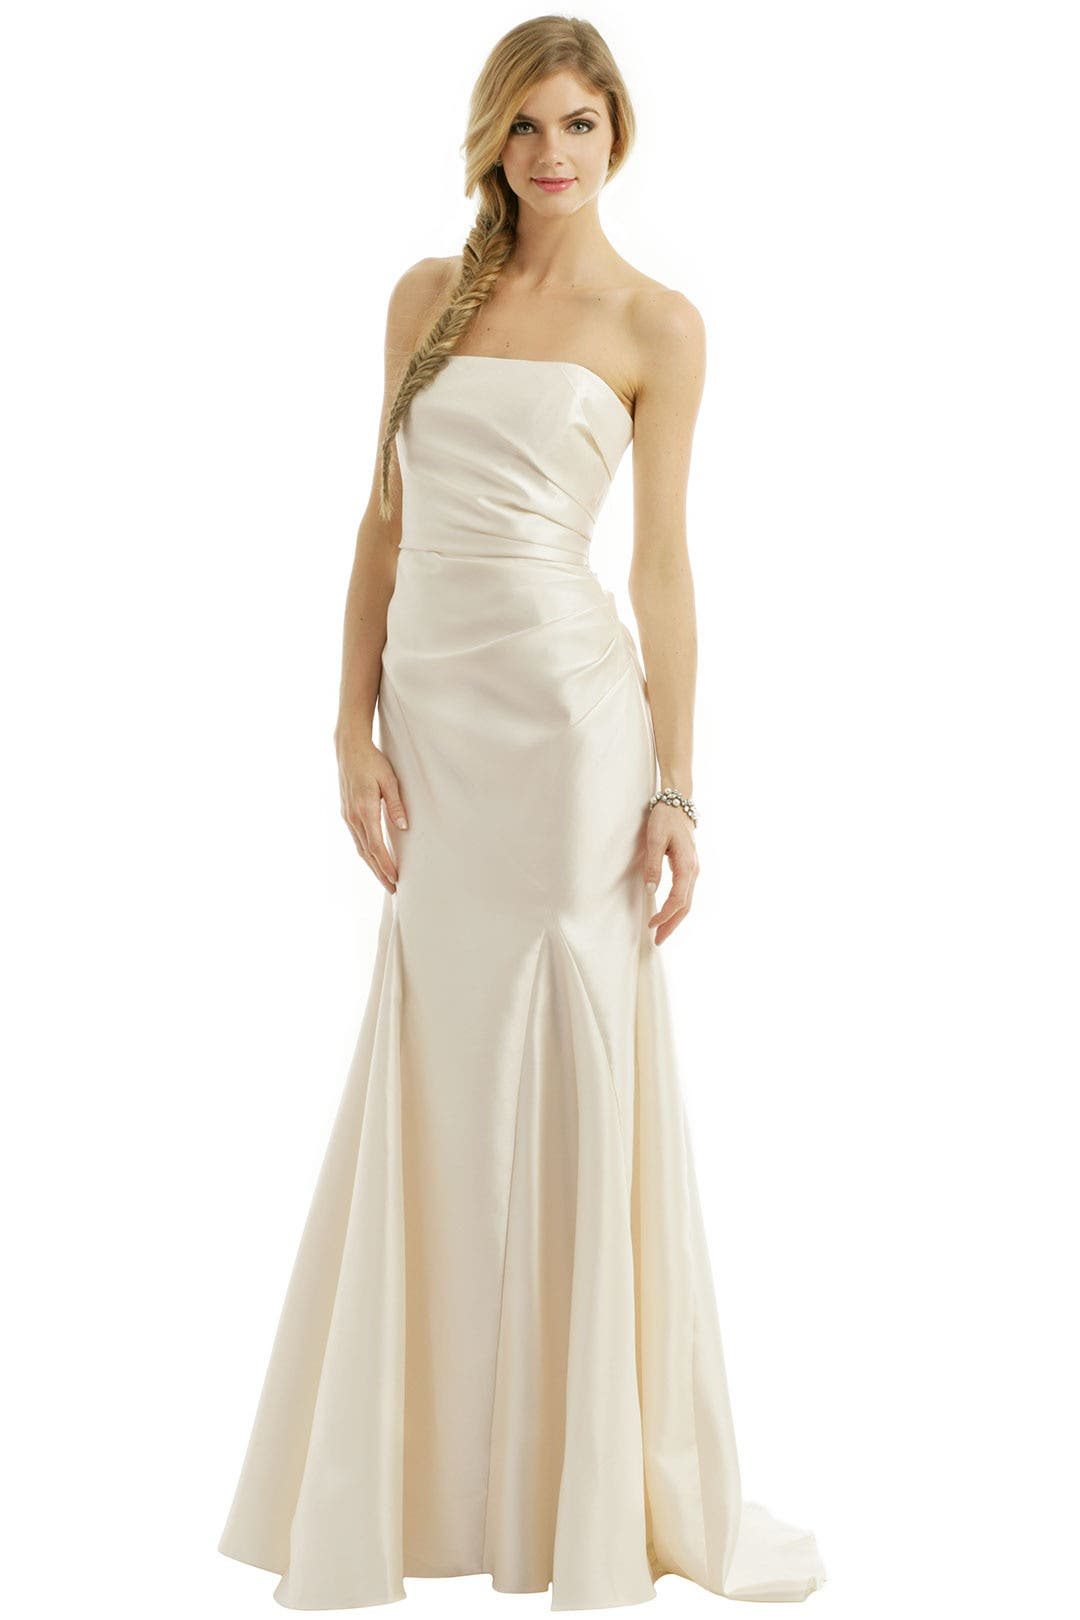 Ivory Dream Gown by Badgley Mischka for $150 | Rent the Runway